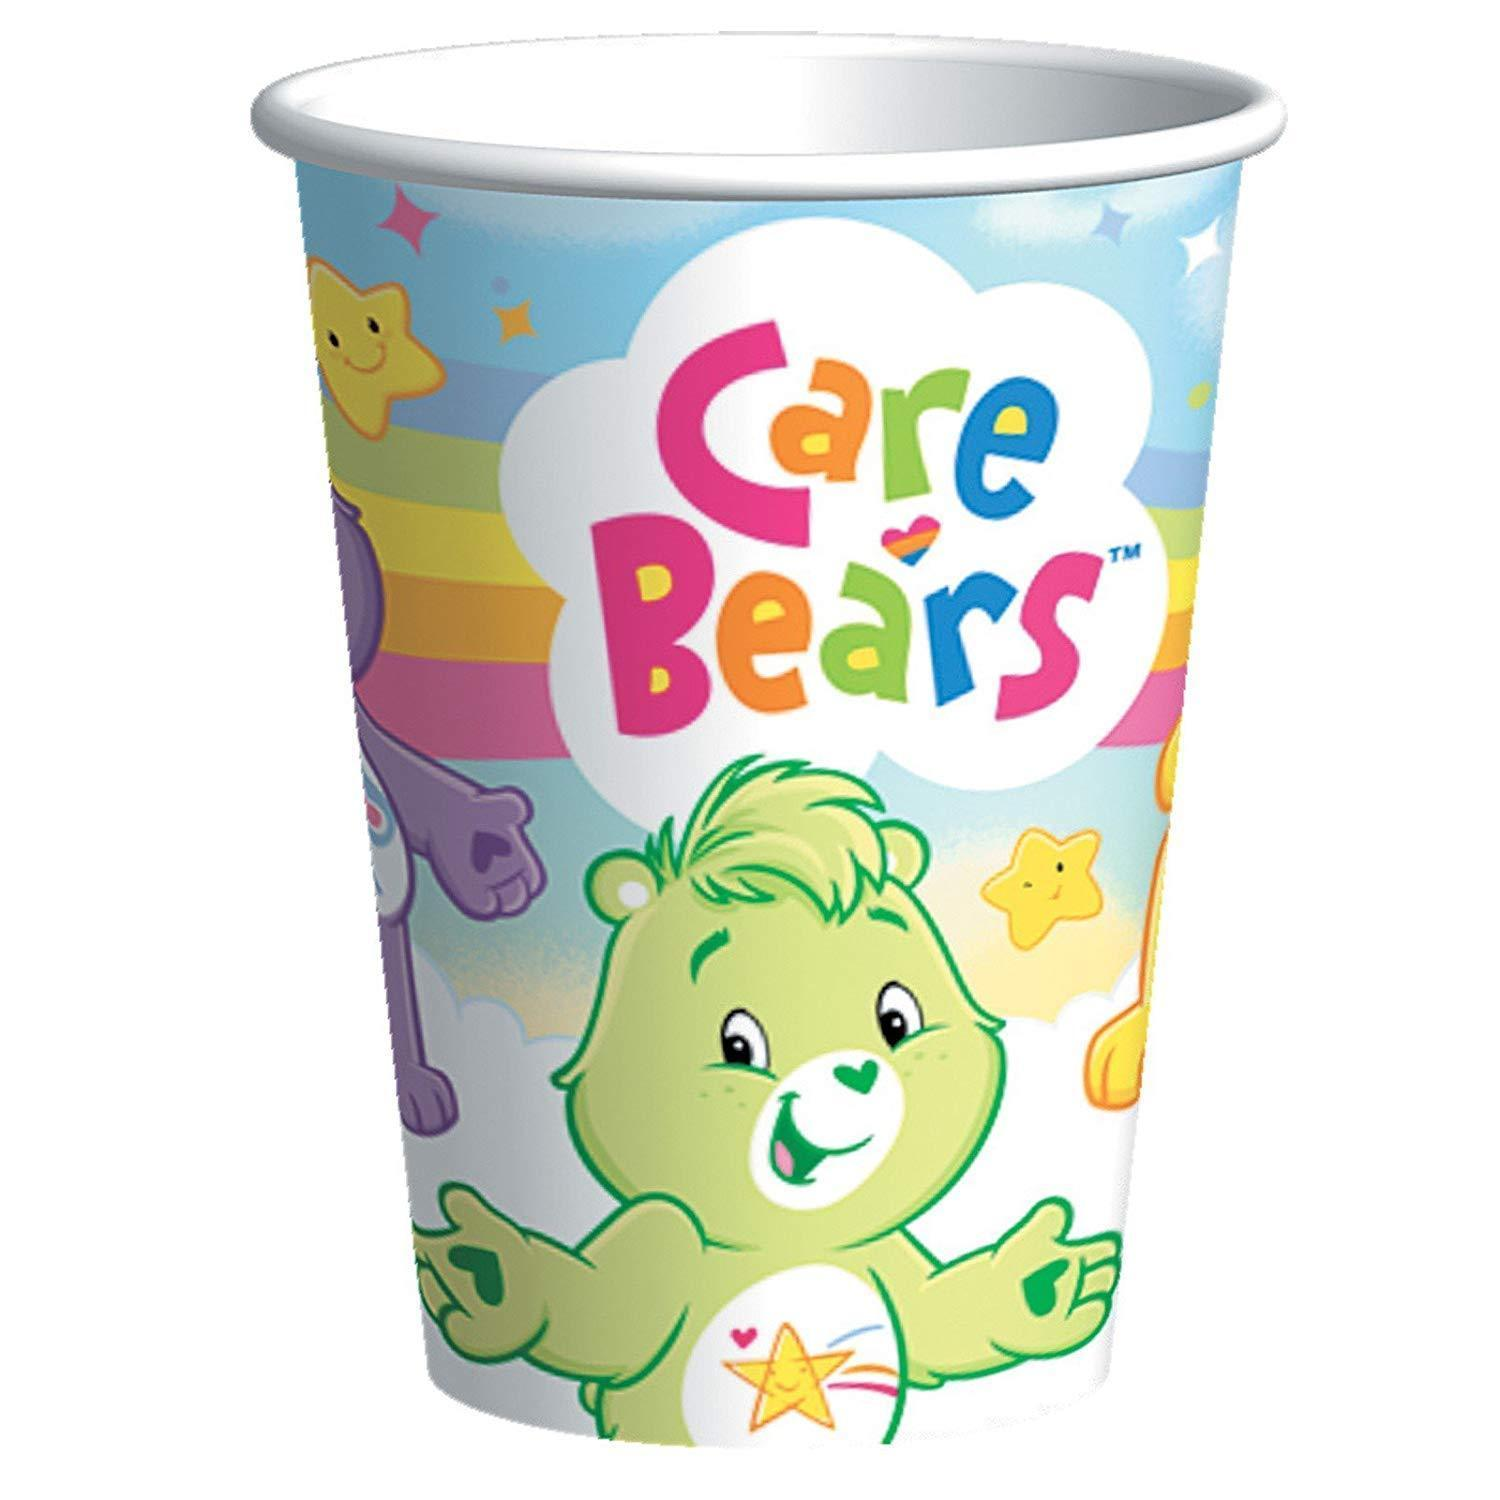 LOT OF 6  CARE BEARS 8 ct-PAPER CUPS 9 FL. OZ. -BIRTHDAY- PARTY SUPPLIES - $37.39